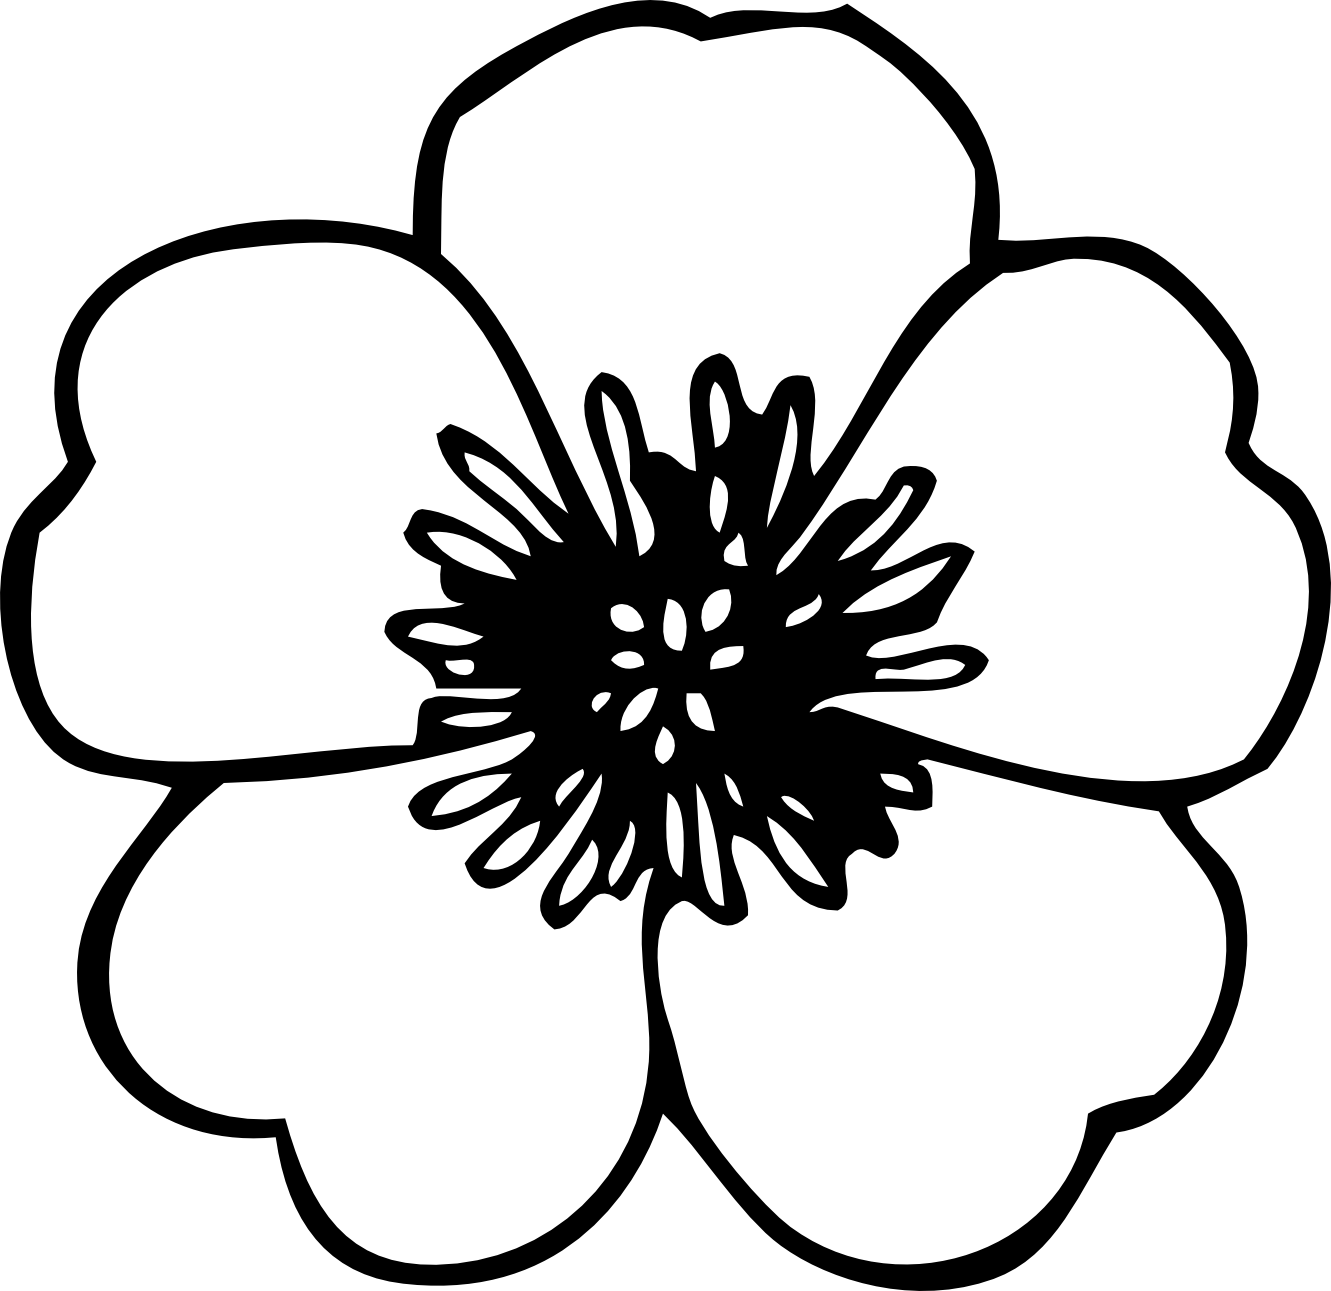 Simple 20flower 20clipart 20black 20and 20white